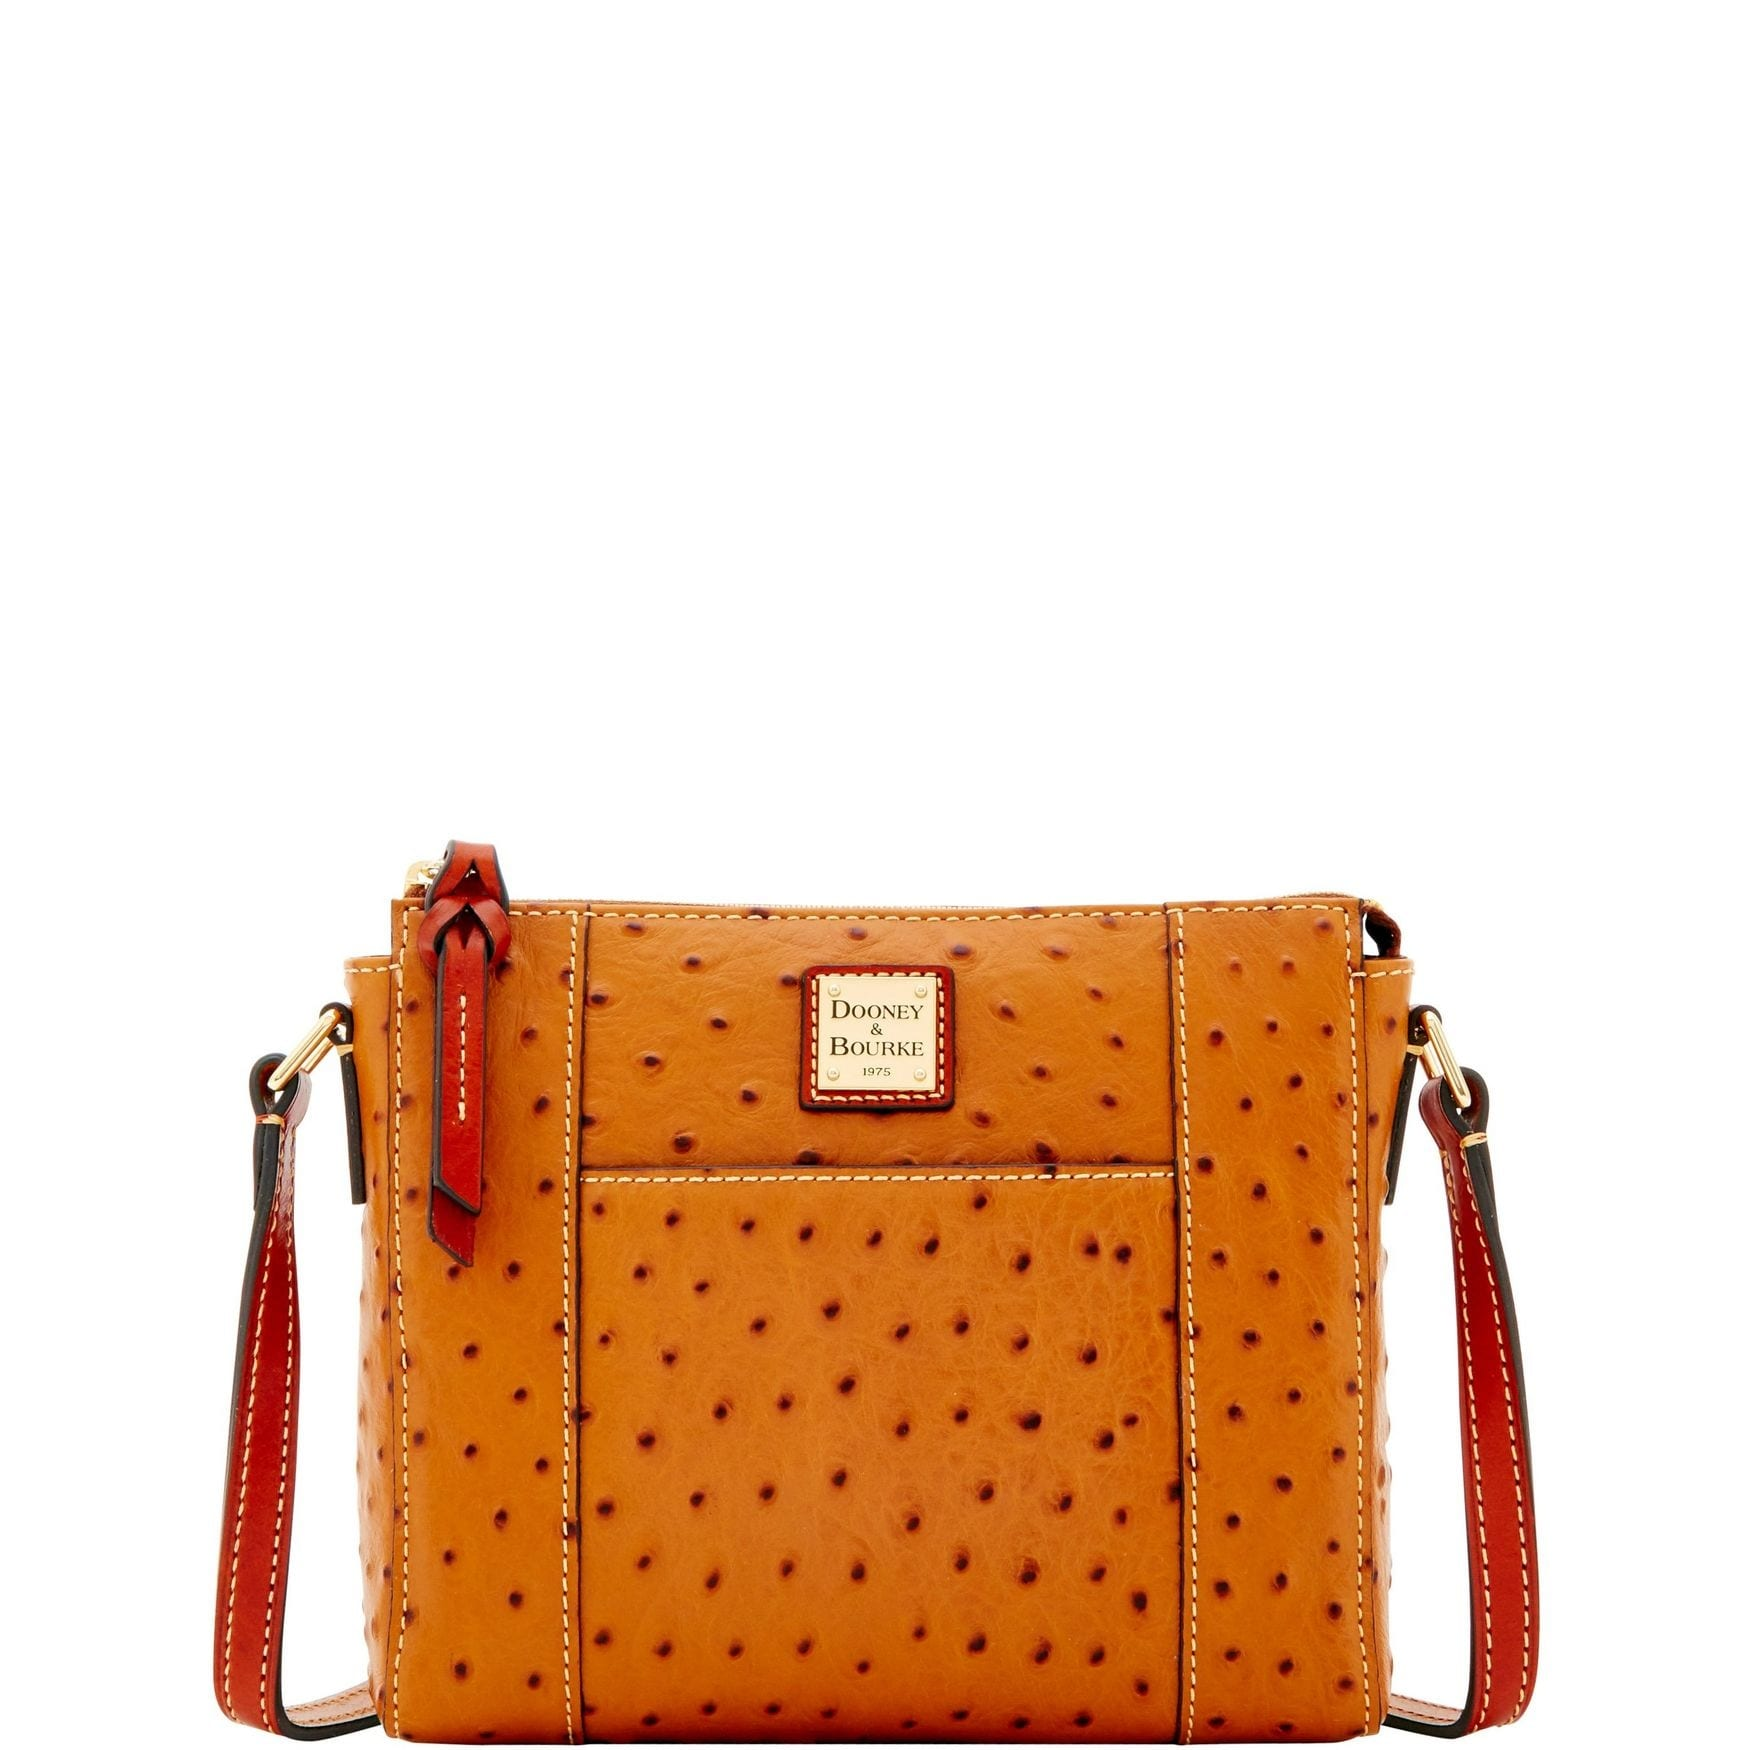 b5dff5ea91 Dooney & Bourke Ostrich Embossed Leather Lexington Crossbody Shoulder Bag  (Introduced by Dooney & Bourke in Jan 2018)